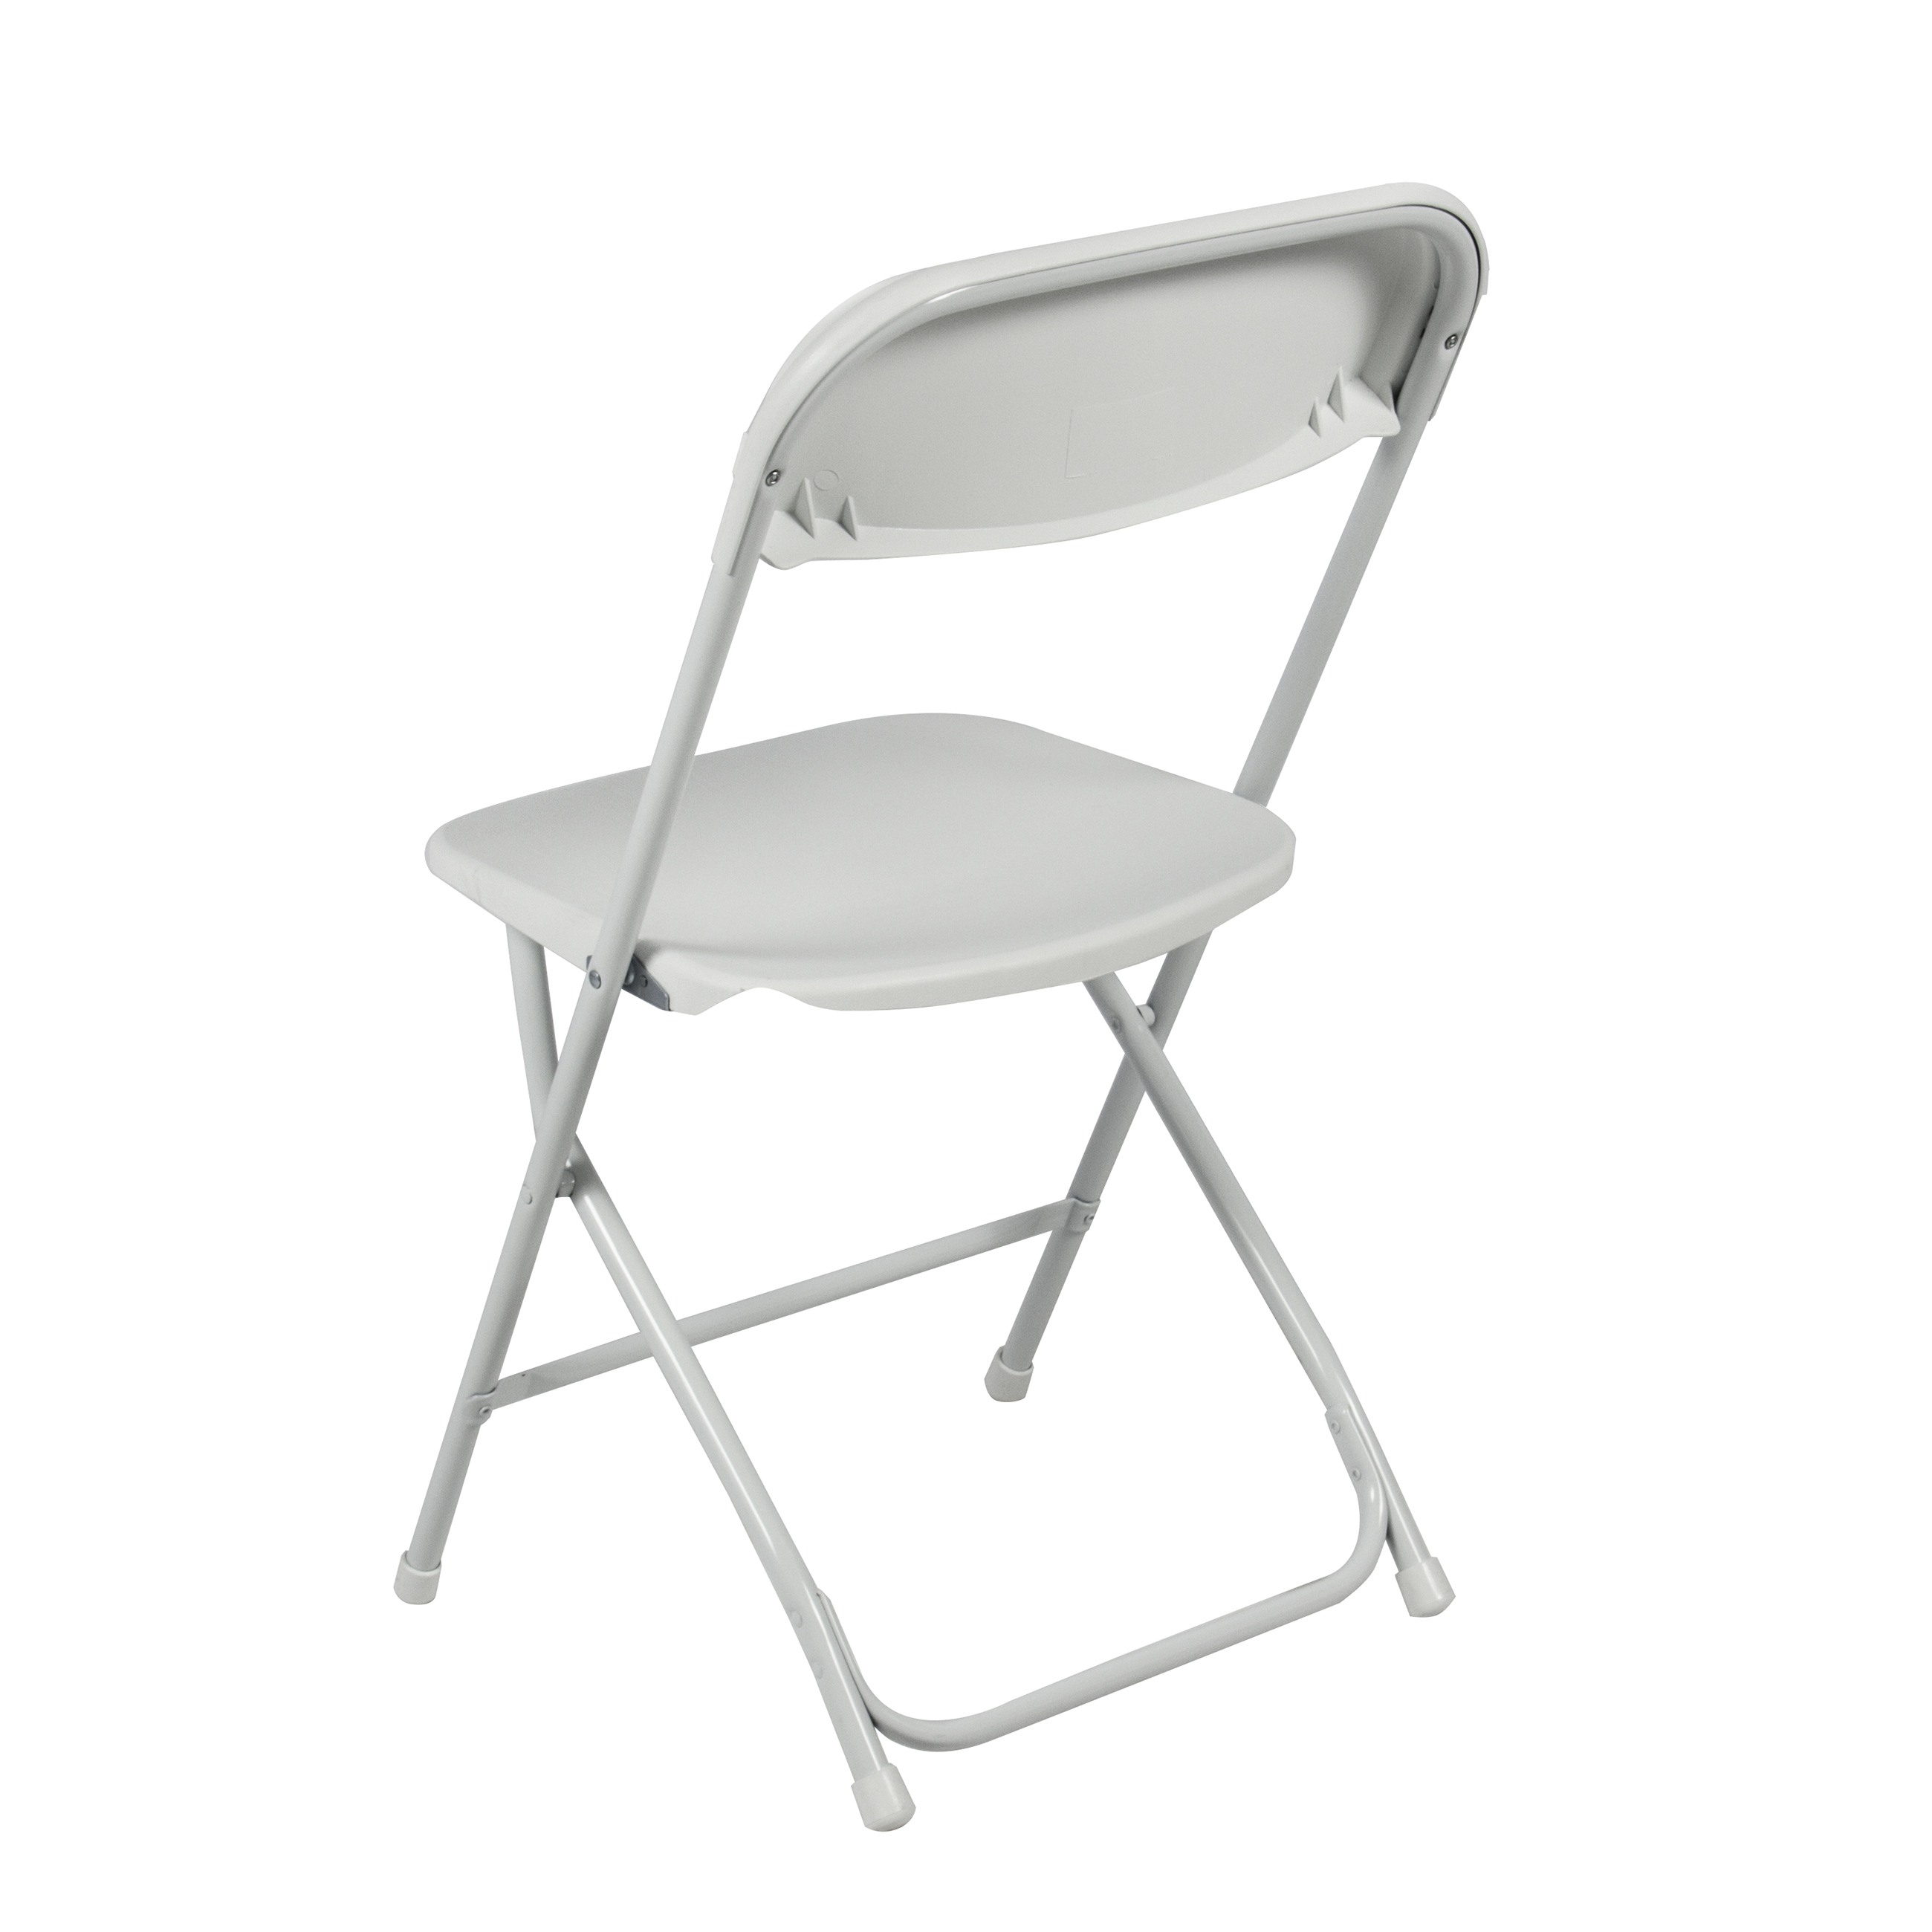 Elegant 5-pack commercial white plastic folding chairs stackable wedding party  event chair - ufoehls